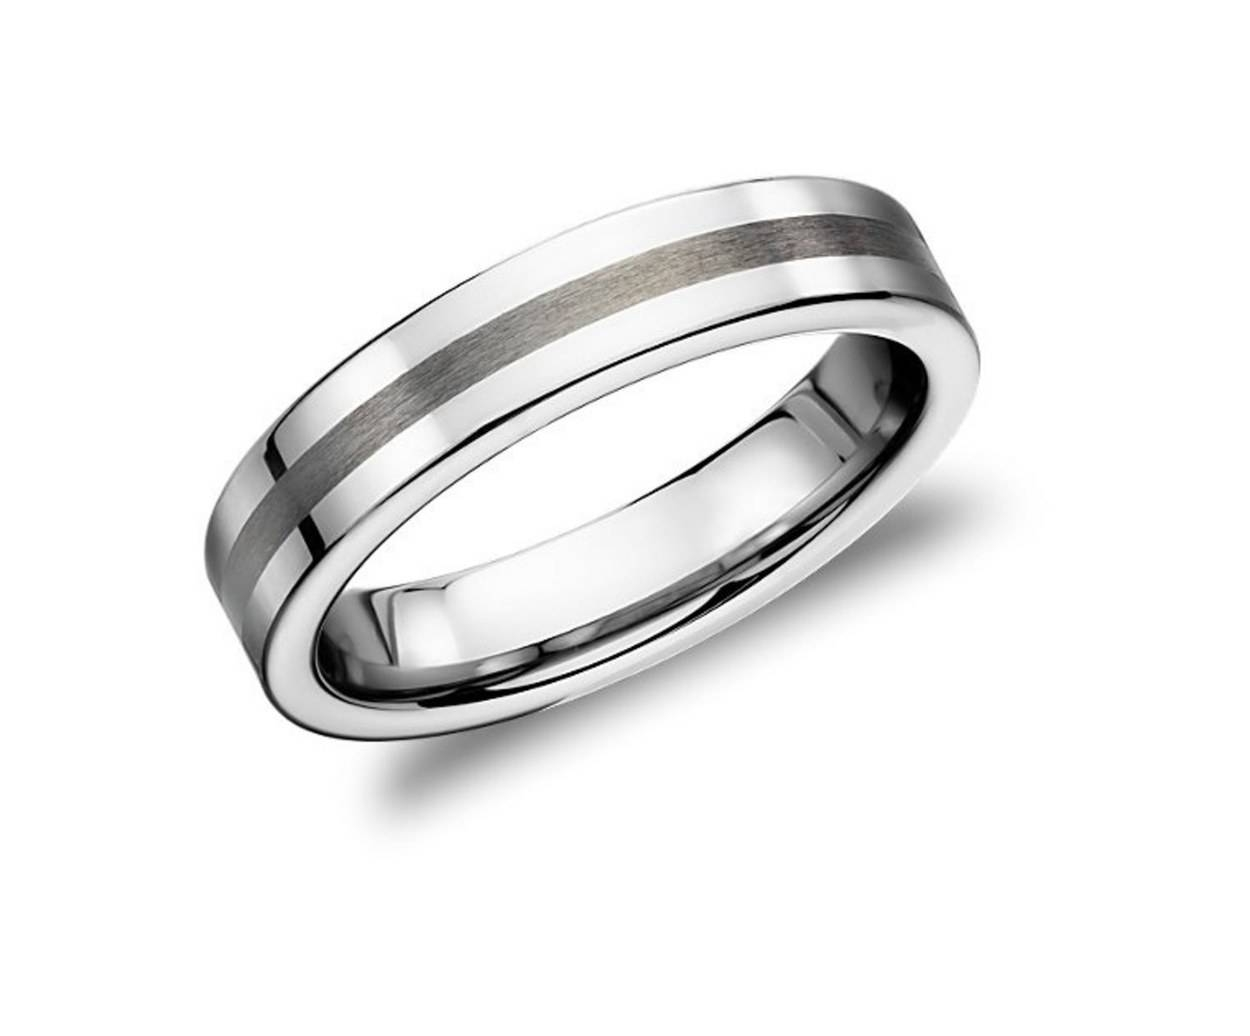 15 Men's Wedding Bands Your Groom Won't Want To Take Off | Glamour With Regard To Mens Square Wedding Bands (Gallery 8 of 15)